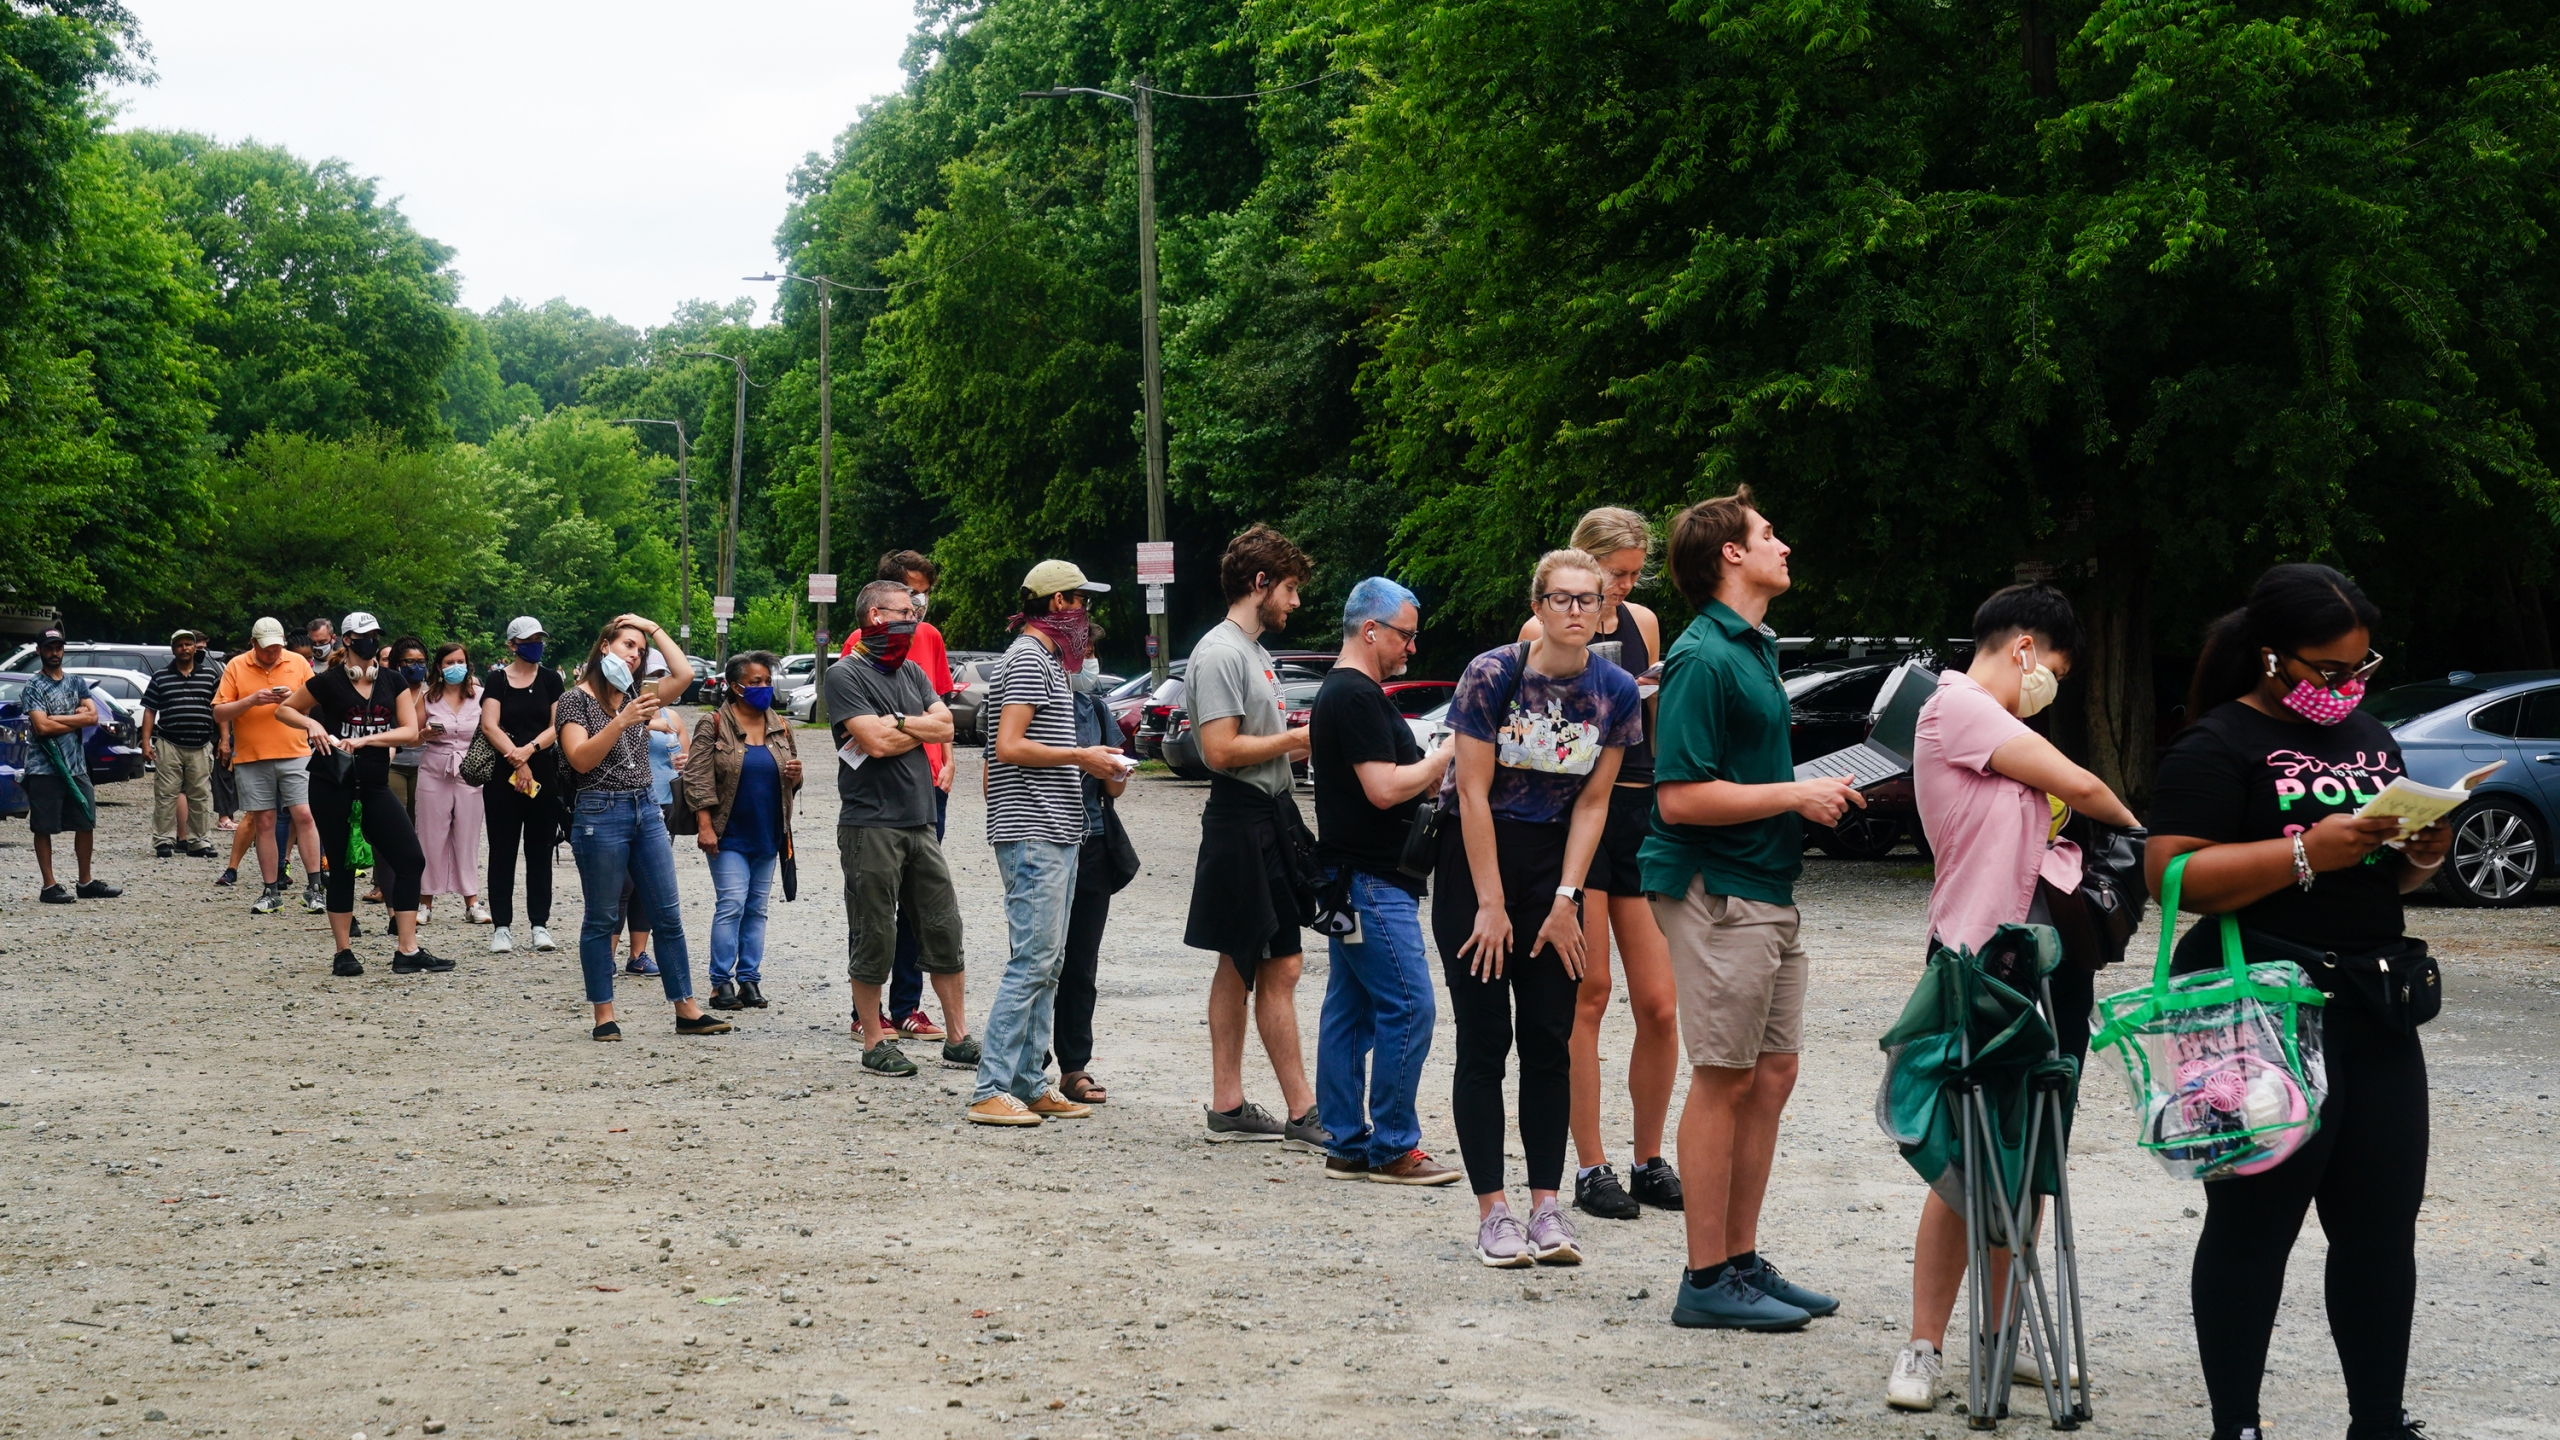 People wait in line to vote in Georgia's primary election on June 9, 2020, in Atlanta, Georgia. (Elijah Nouvelage/Getty Images)